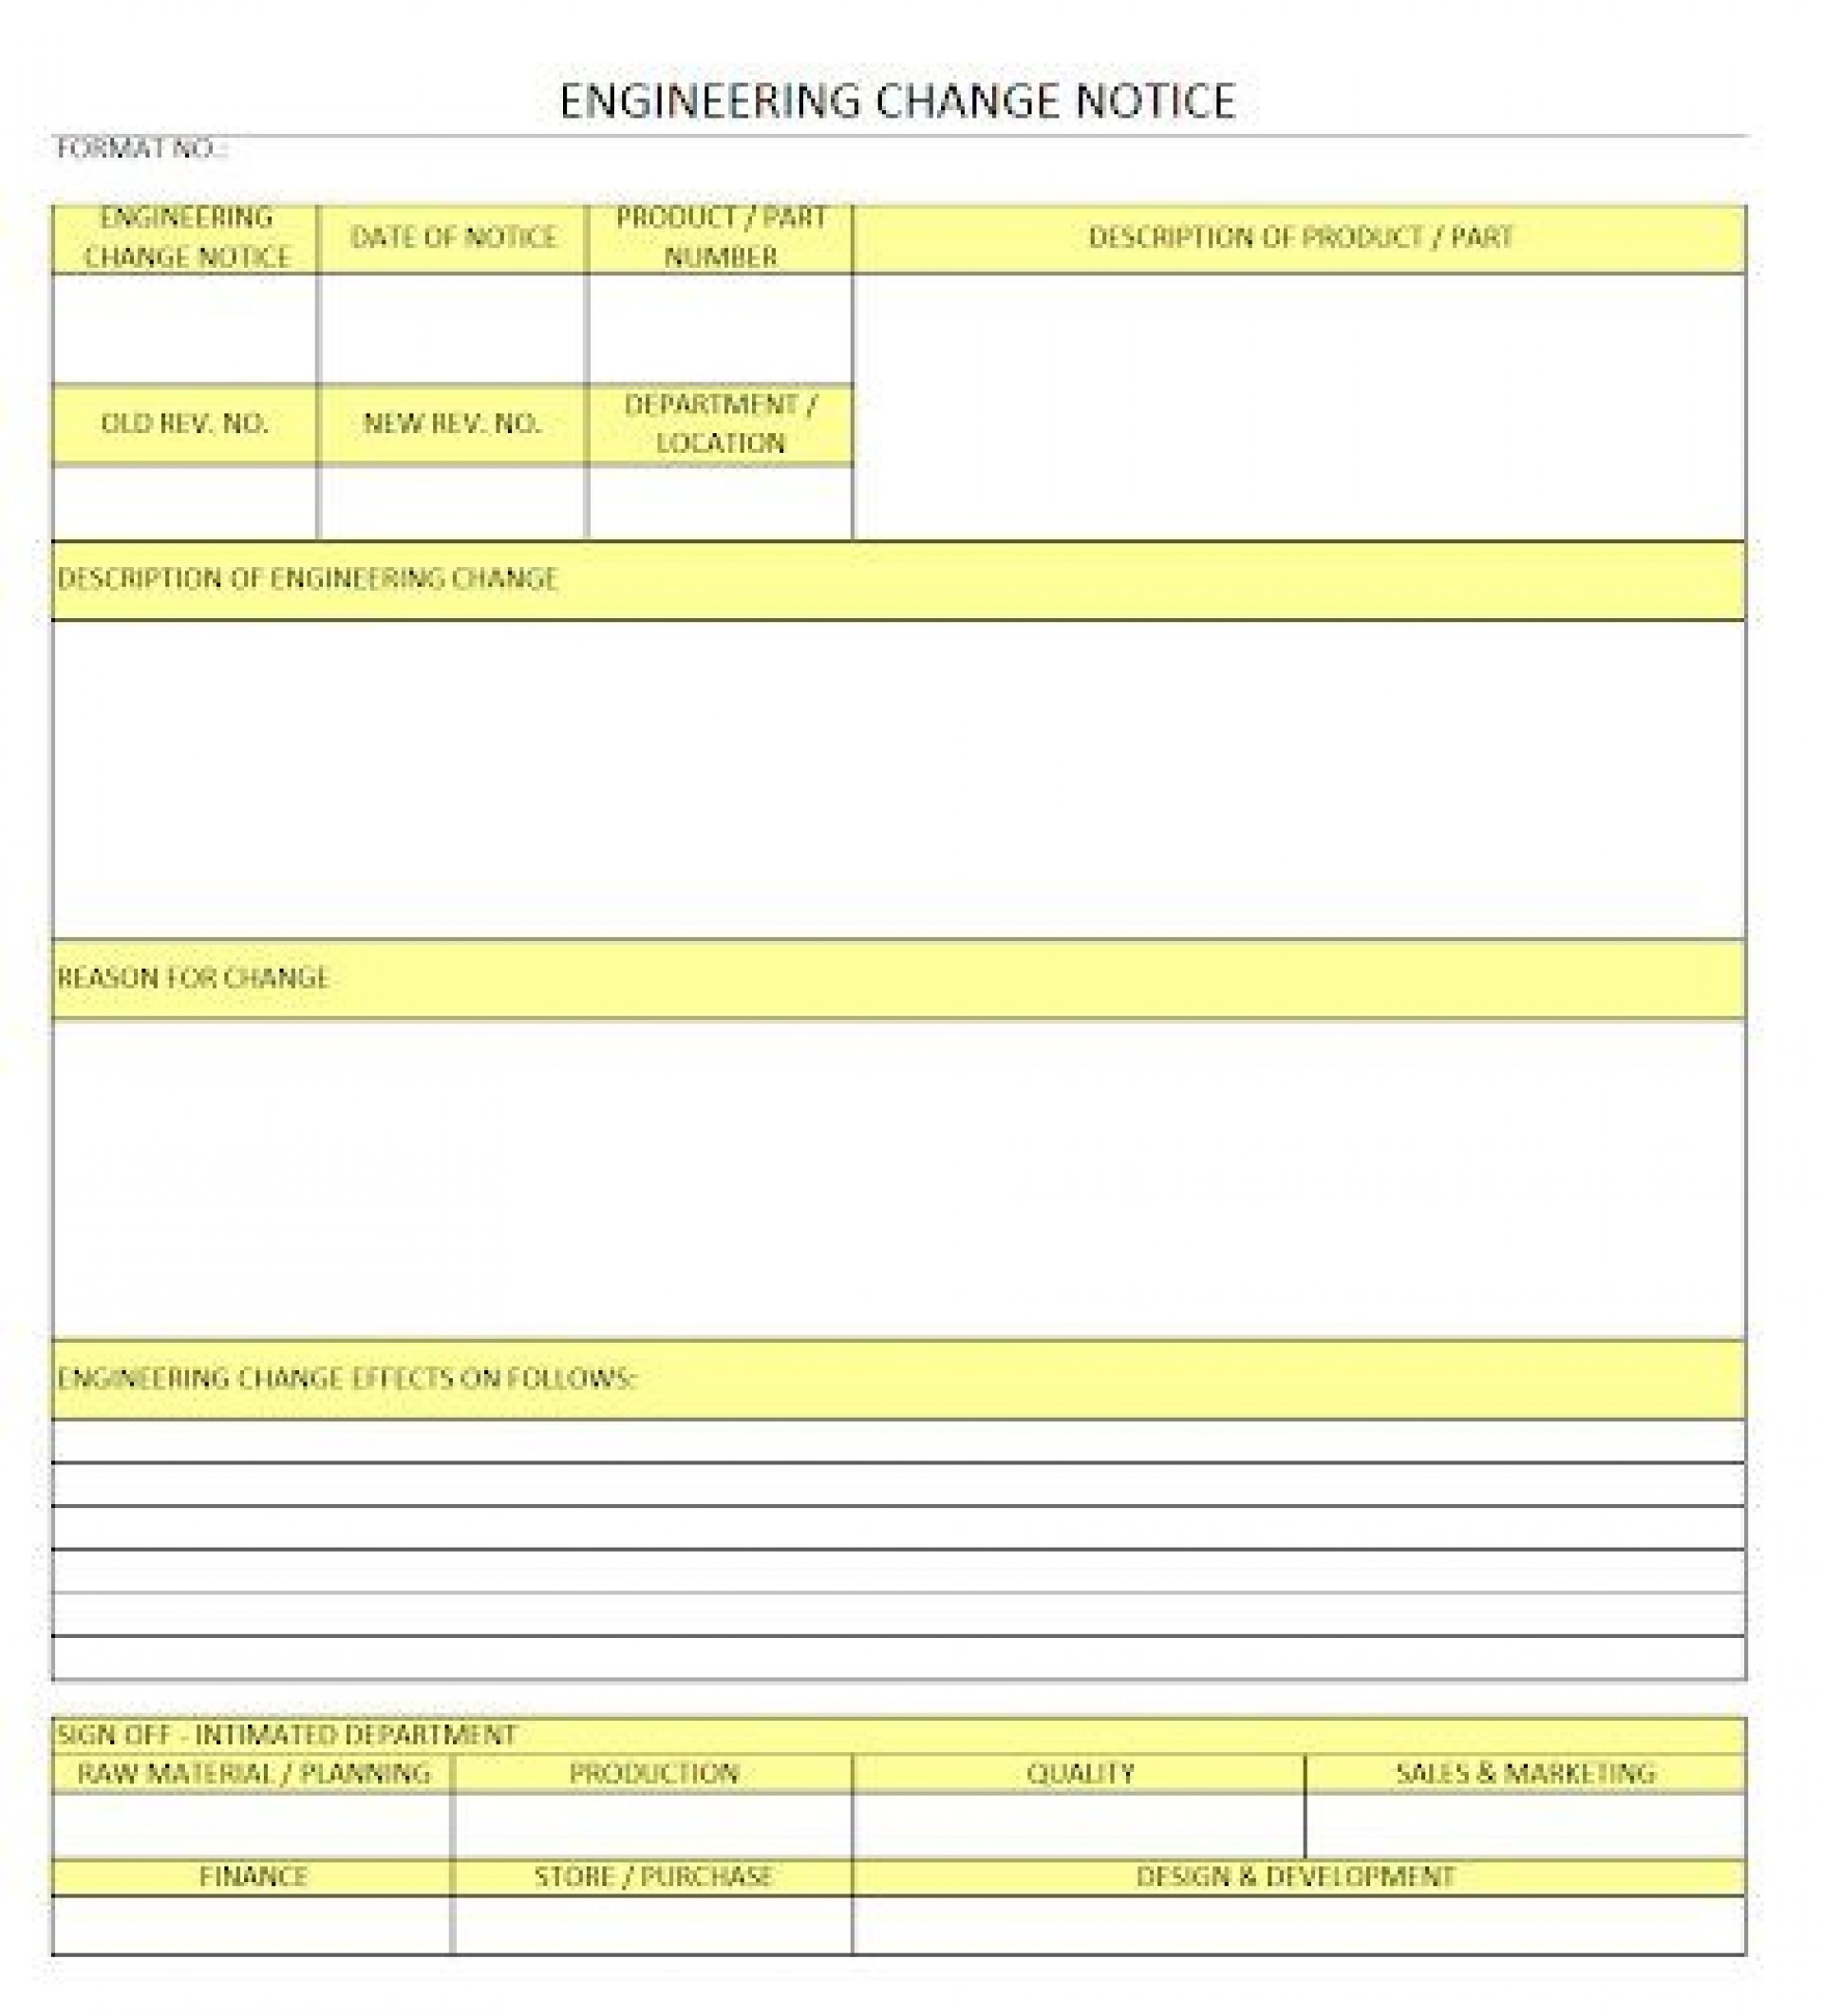 009 Fascinating Engineering Change Order Template Concept 1920